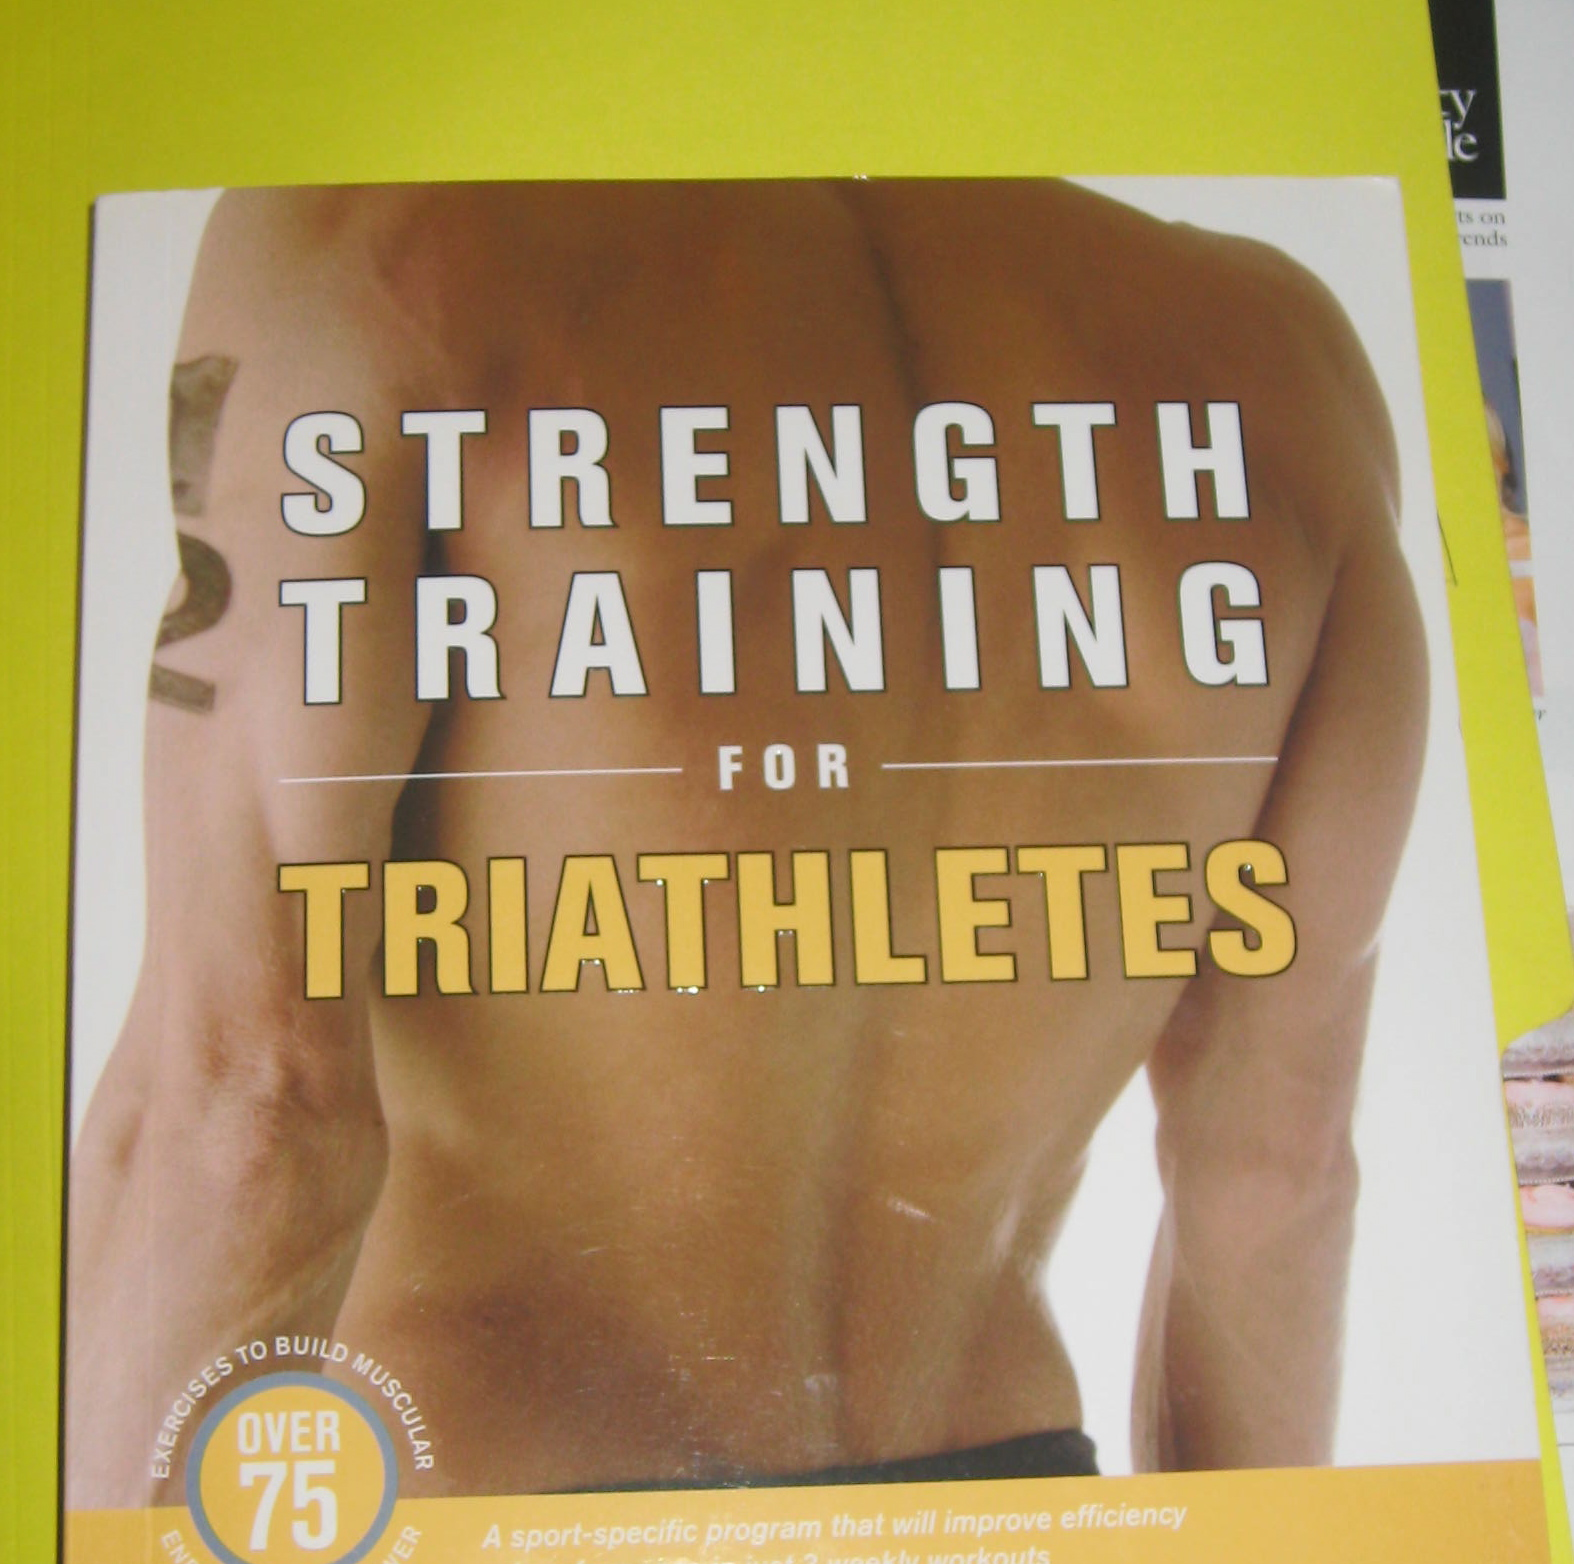 Strength Training For Triathletes: KONABARBIE: Strength Training